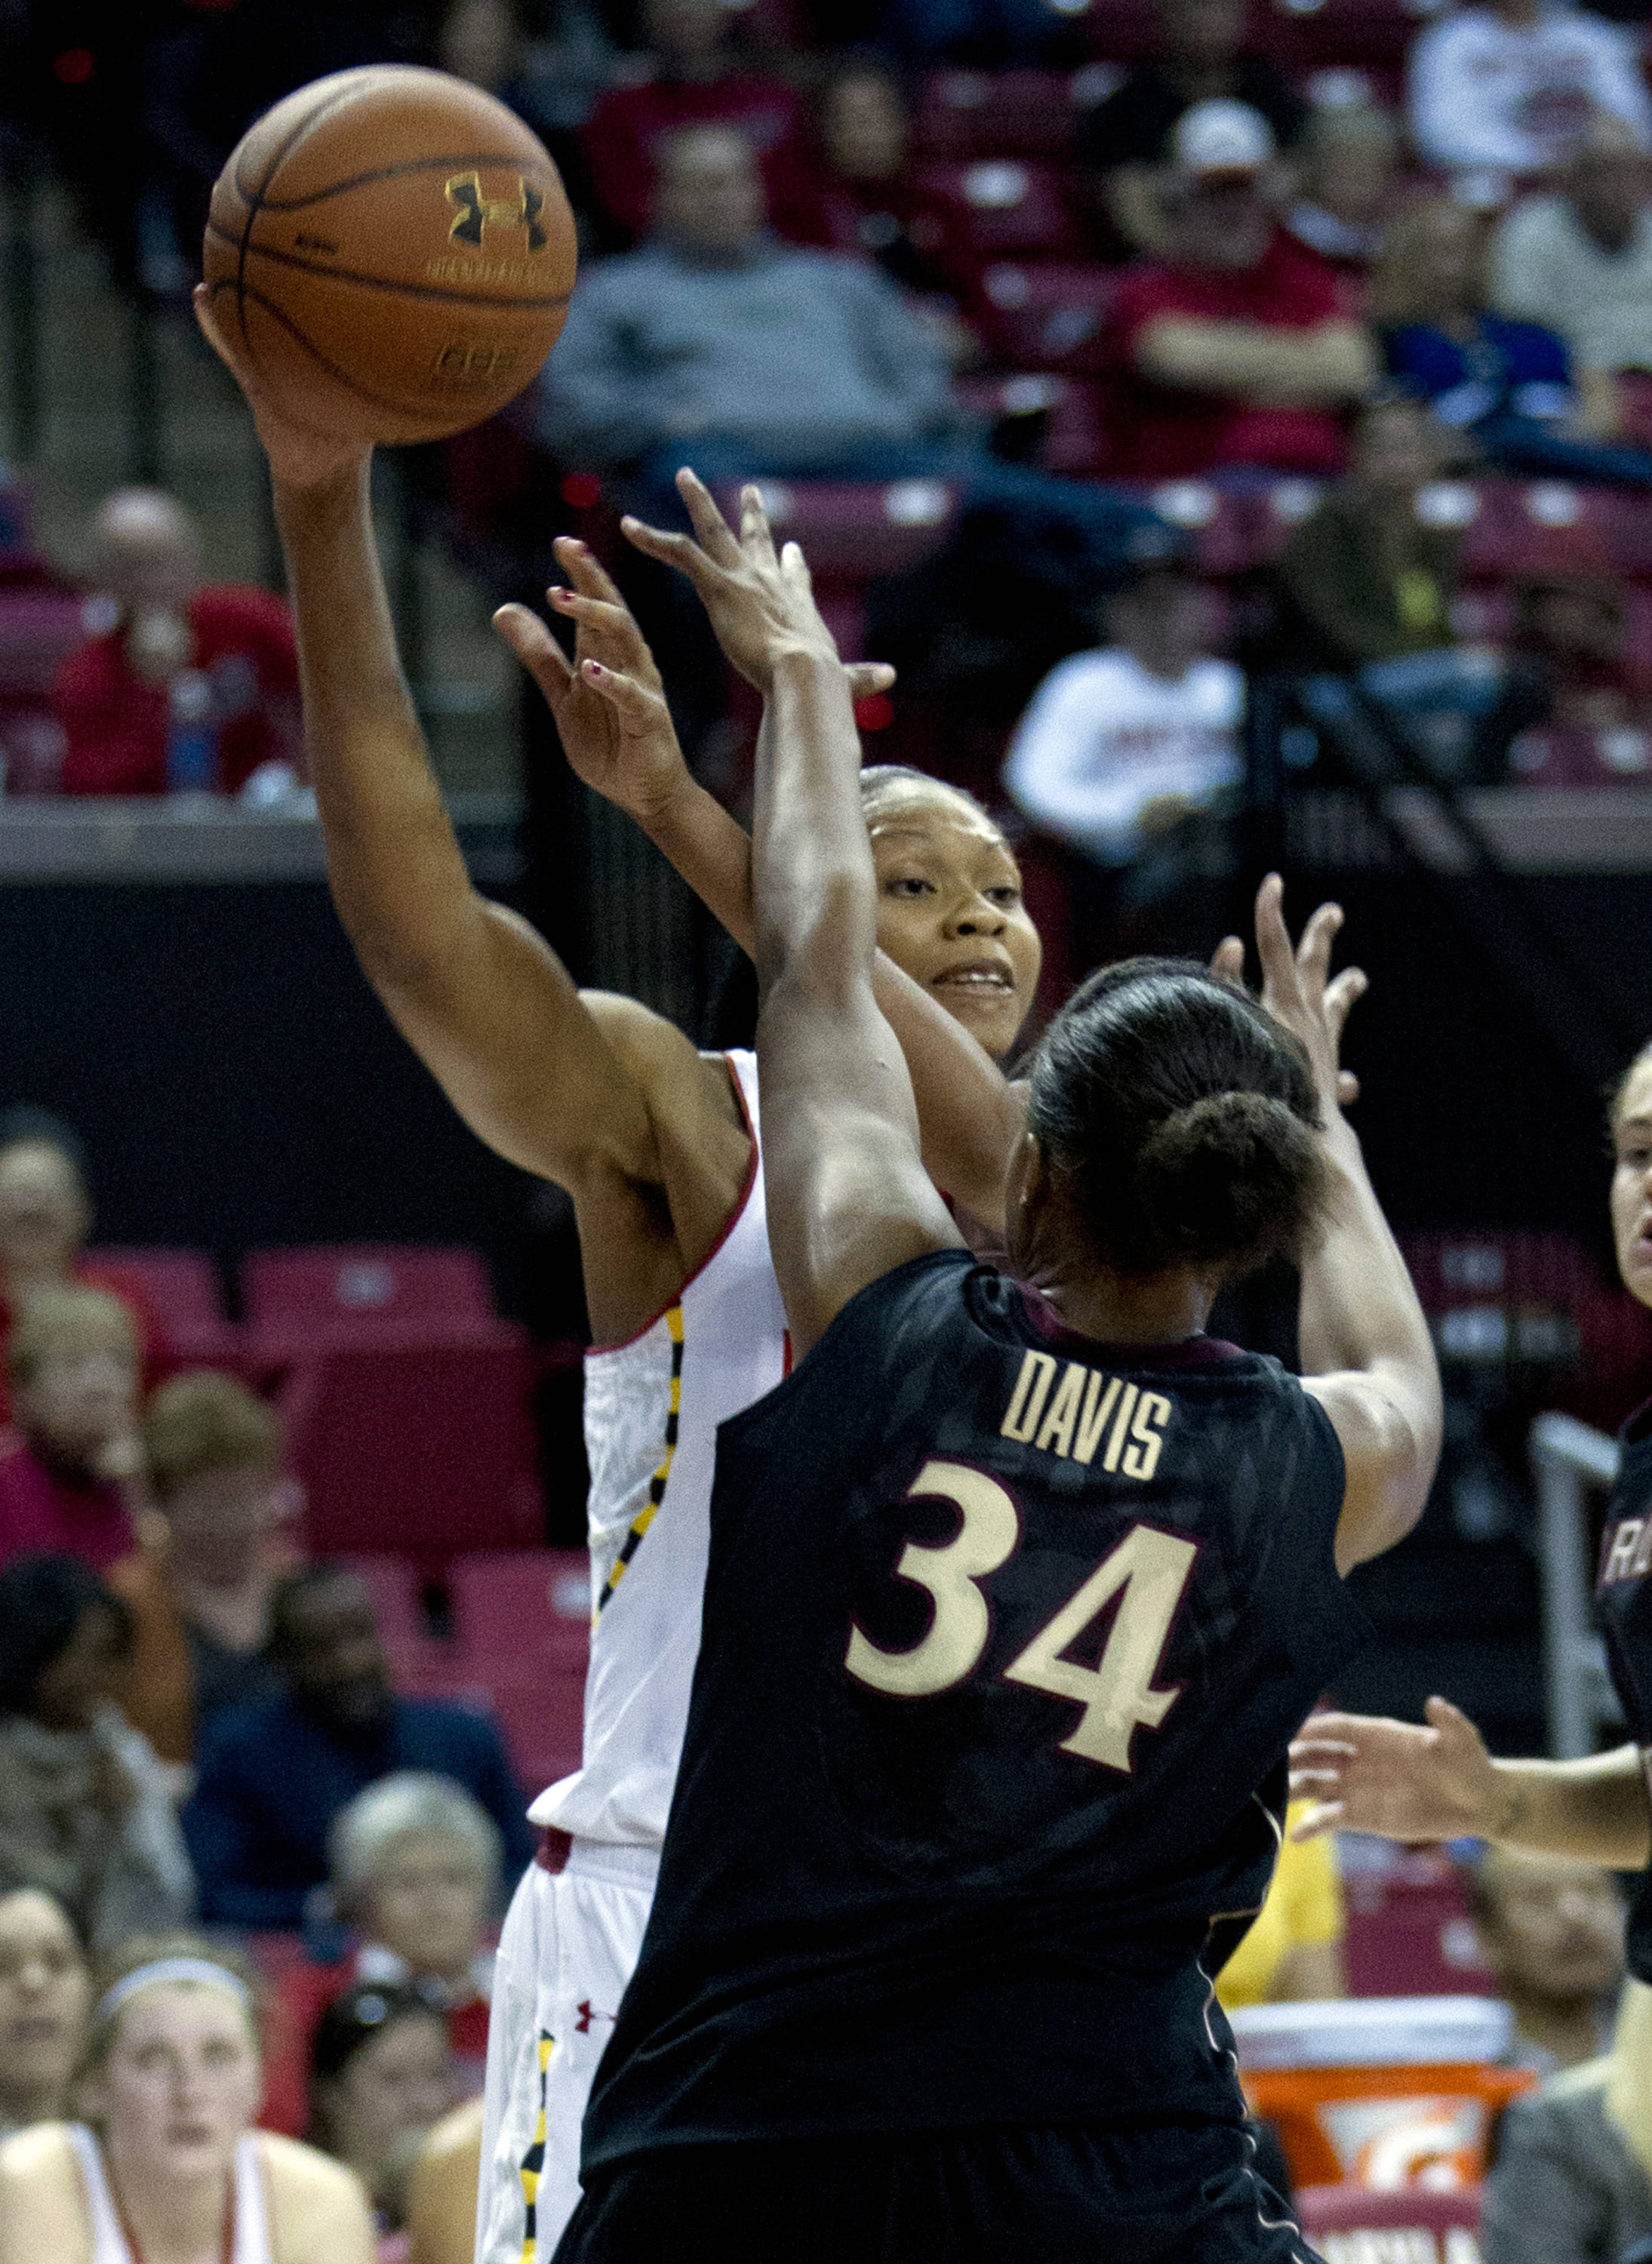 Maryland's Alicia DeVaughn, top, passes the ball against Florida State's Chelsea Davis (34) who blocks during the second half. (AP Photo/Jose Luis Magana)